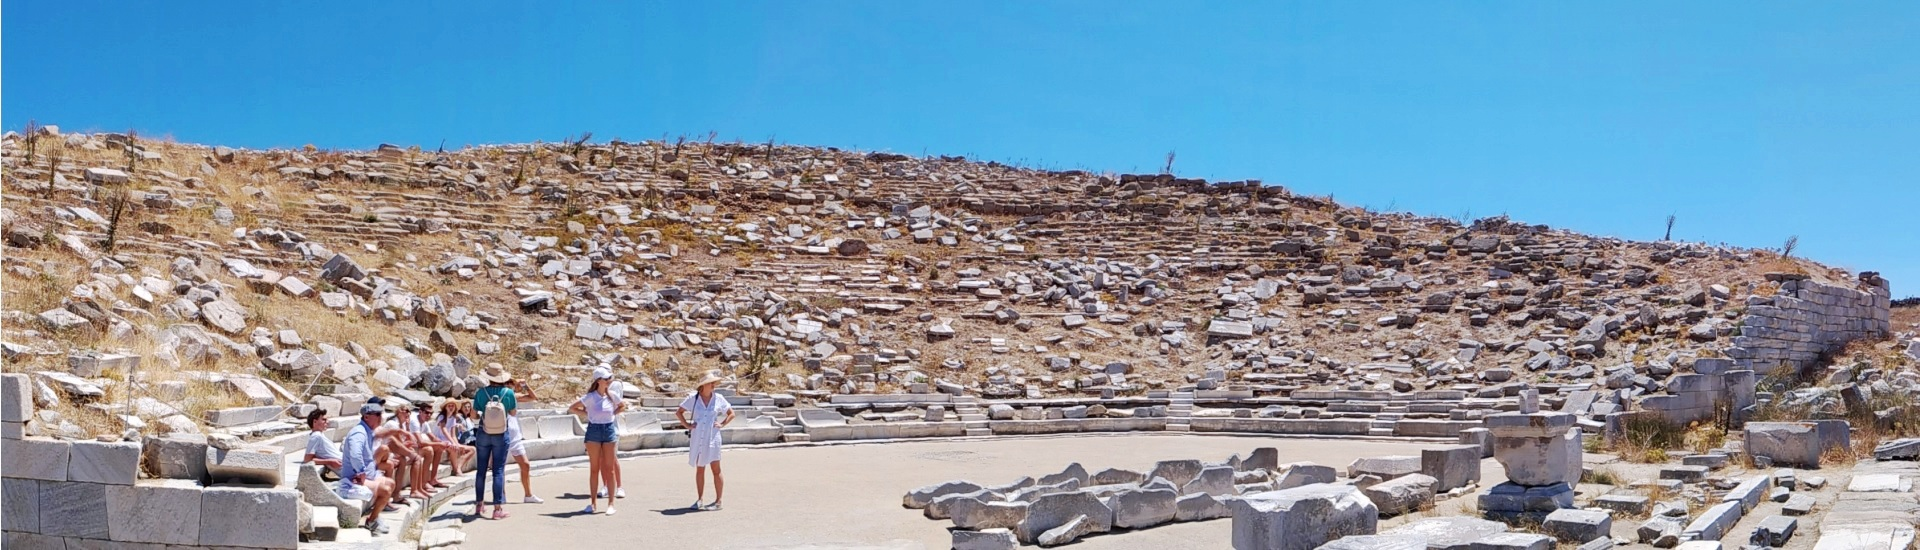 Dicover Delos Cruise - Ancient Delos Tour with Guide from Mykonos